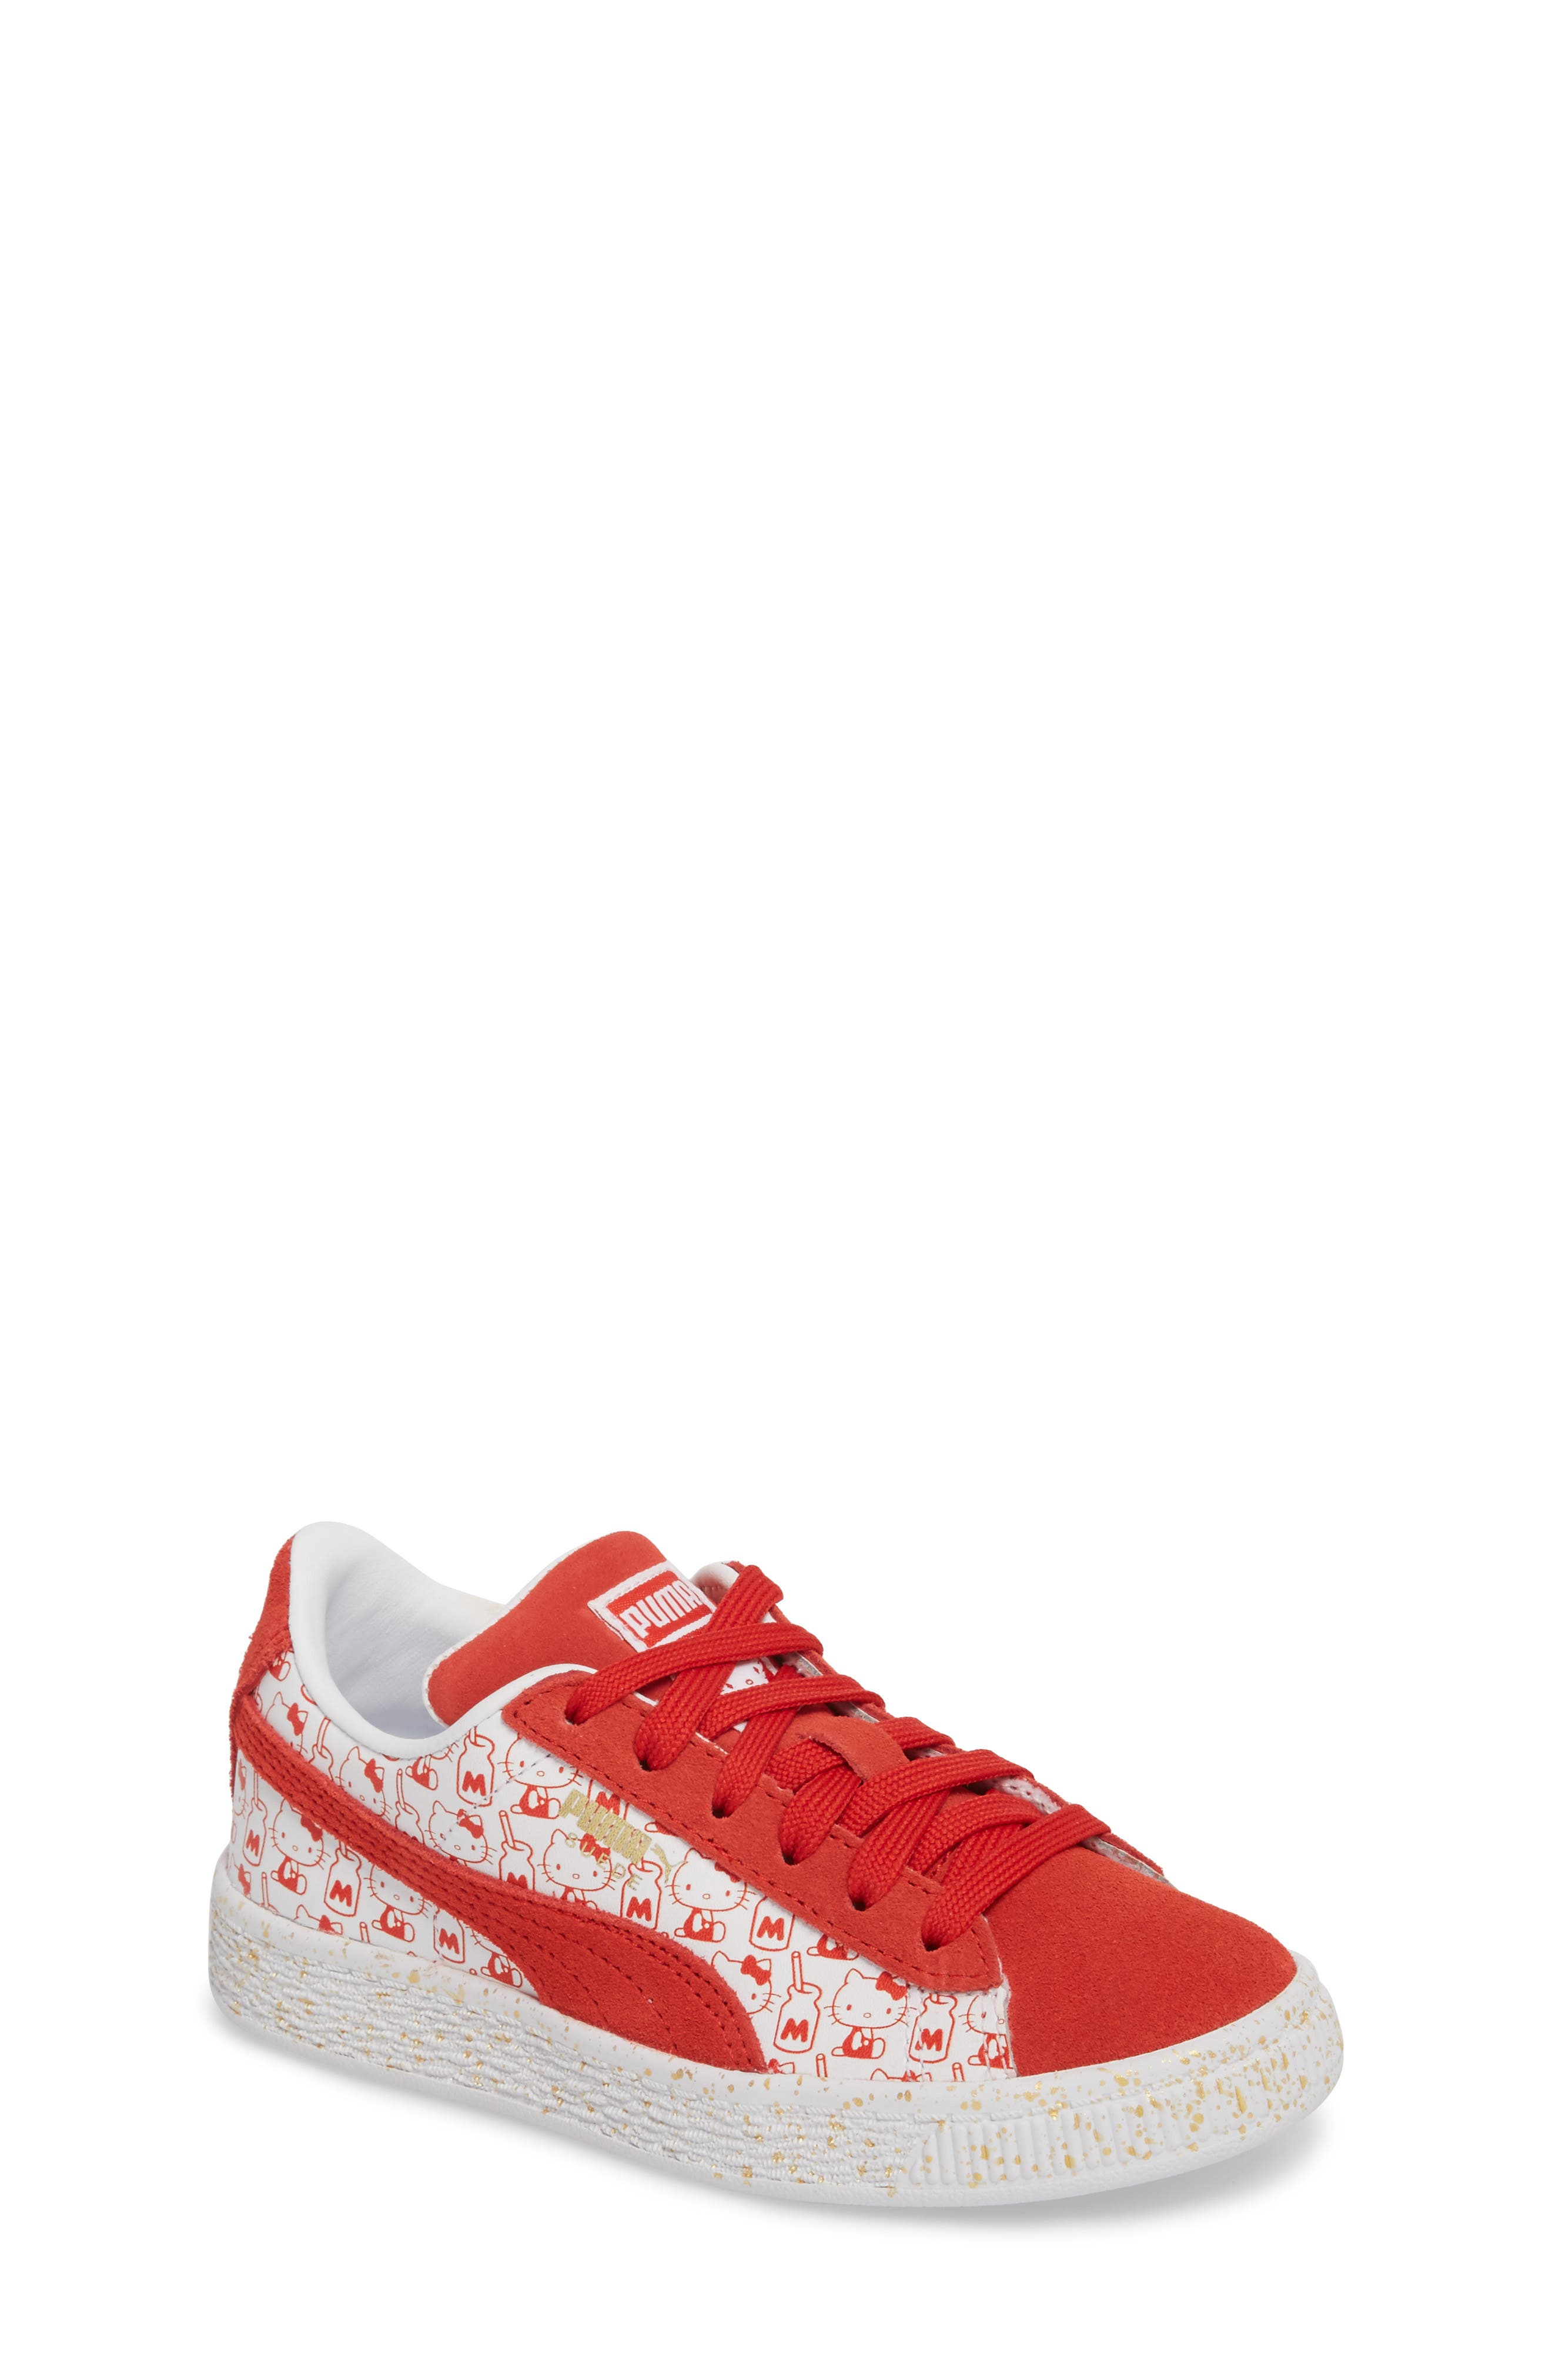 x Hello Kitty Suede Classic Sneaker,                         Main,                         color, 600